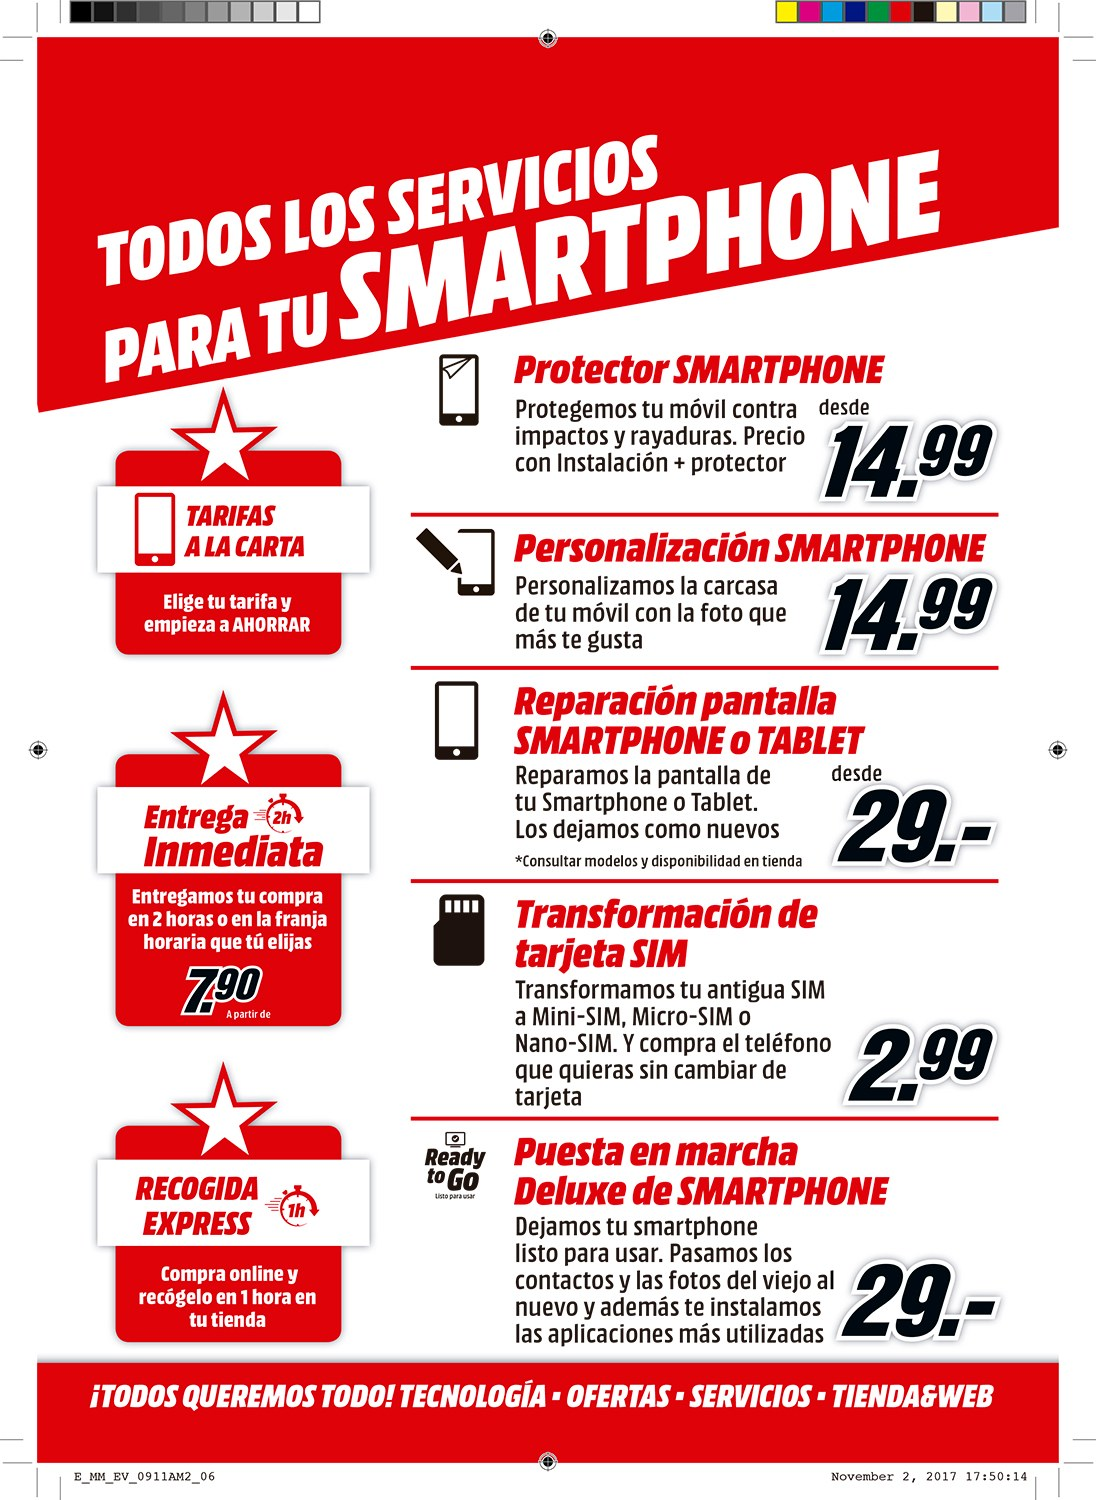 Folleto actual MediaMarkt - 1.1.2018 - 31.12.2018 - Ventas - móvil, smartphone, tablet, té. Página 6.